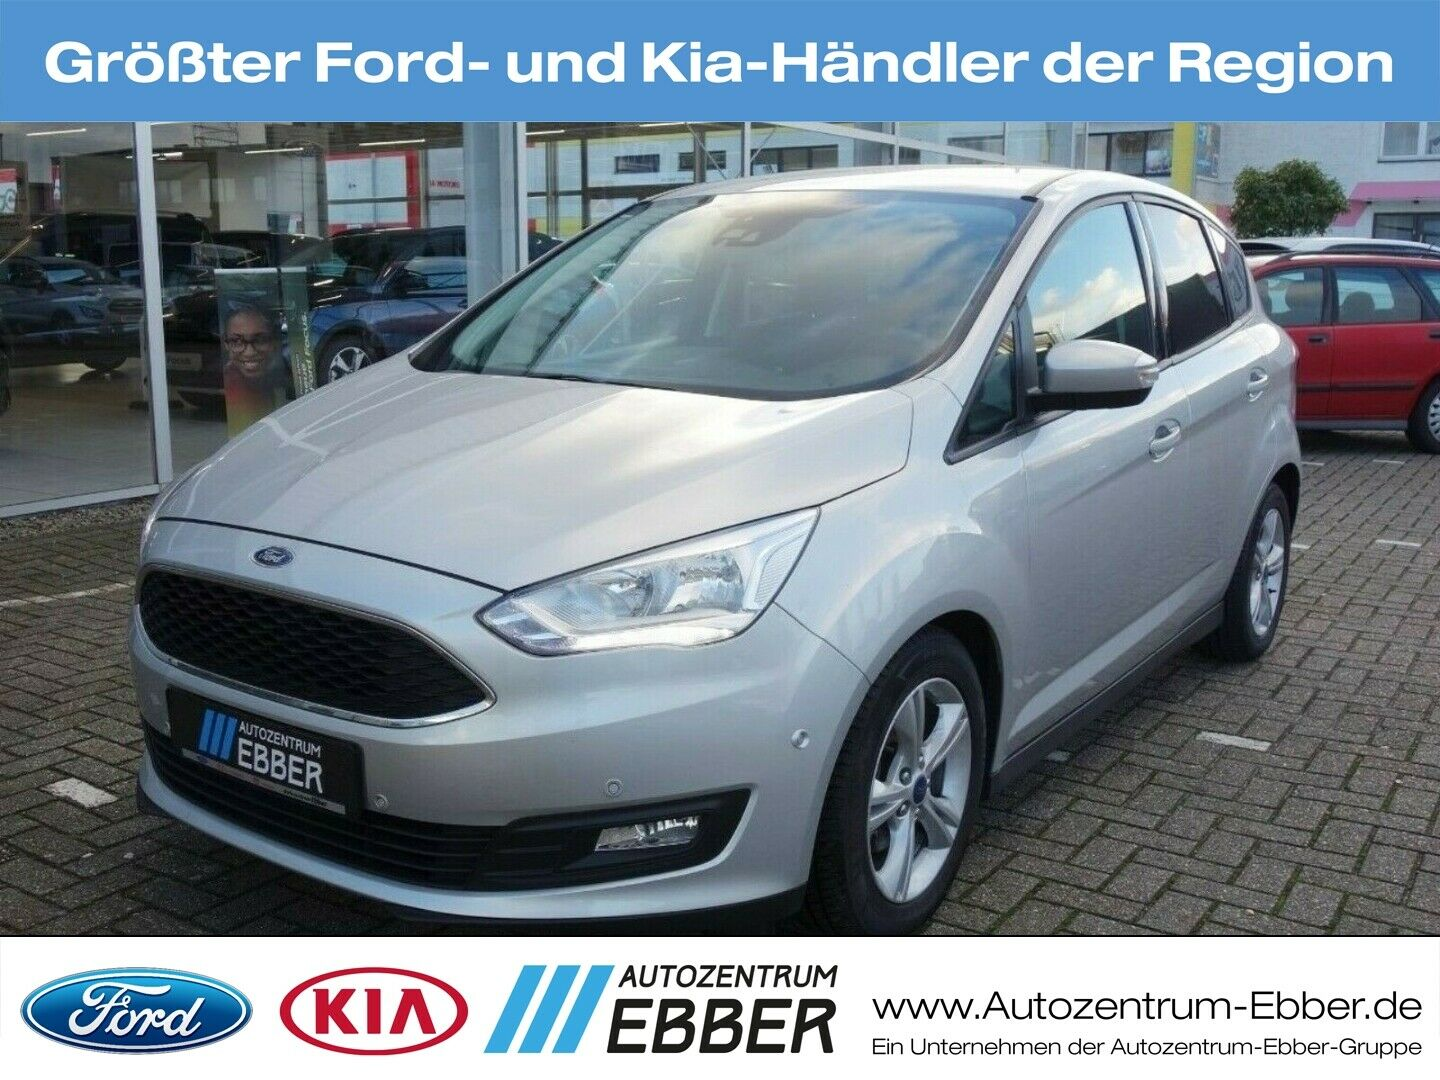 FORD C-Max 1.5 TDCi Business-Edition, Top-Ausstattung